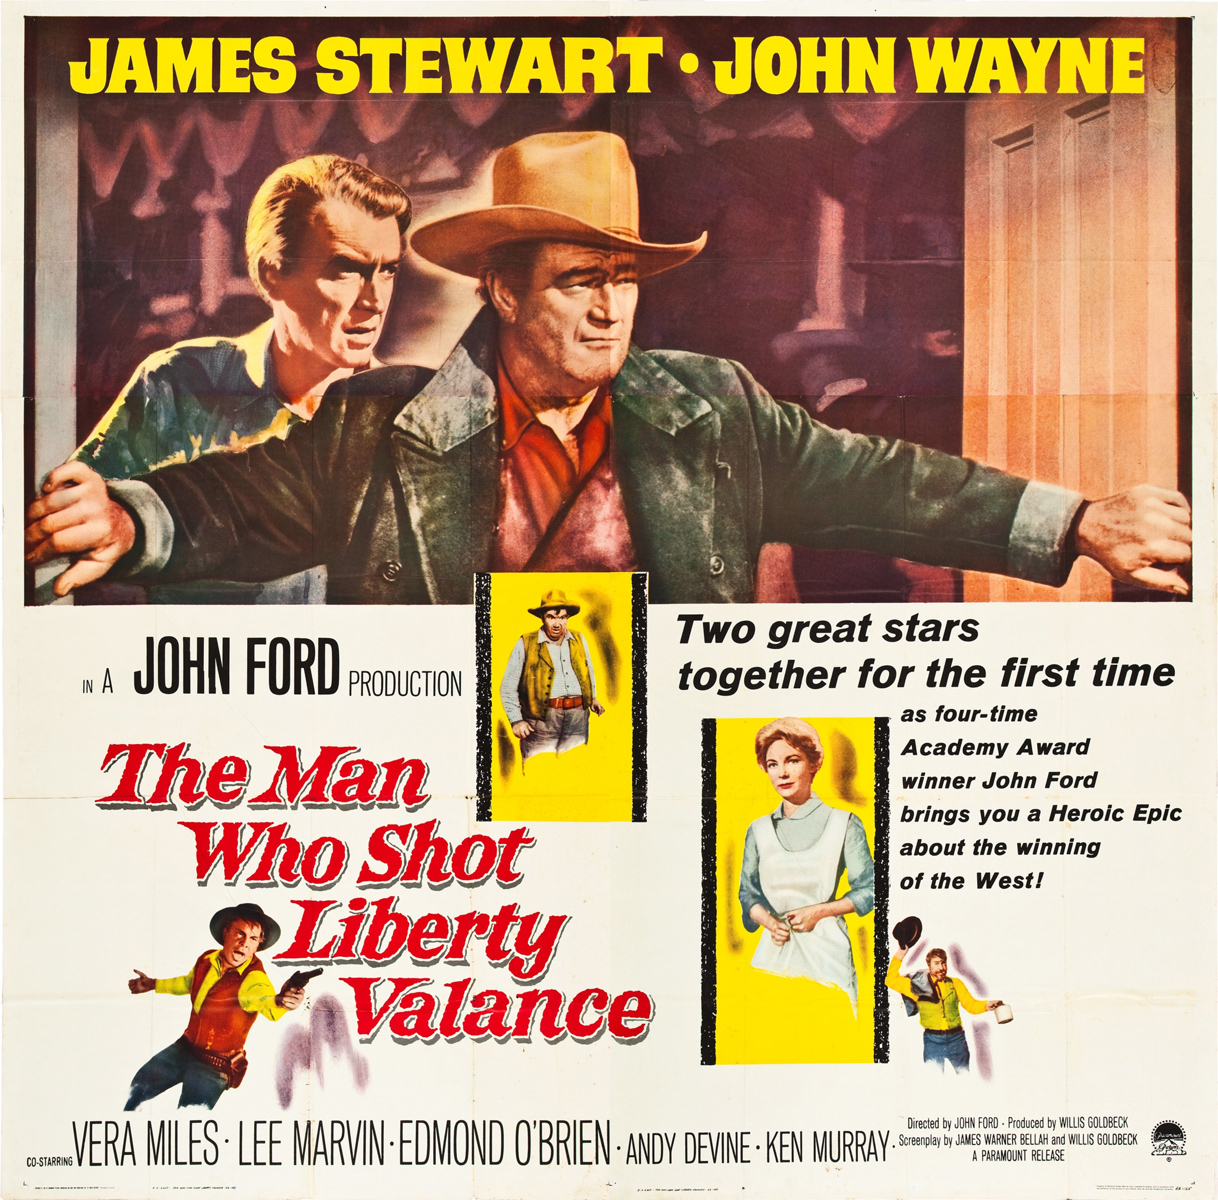 Lee Marvin: I Will Be Point Blank About Liberty Valance